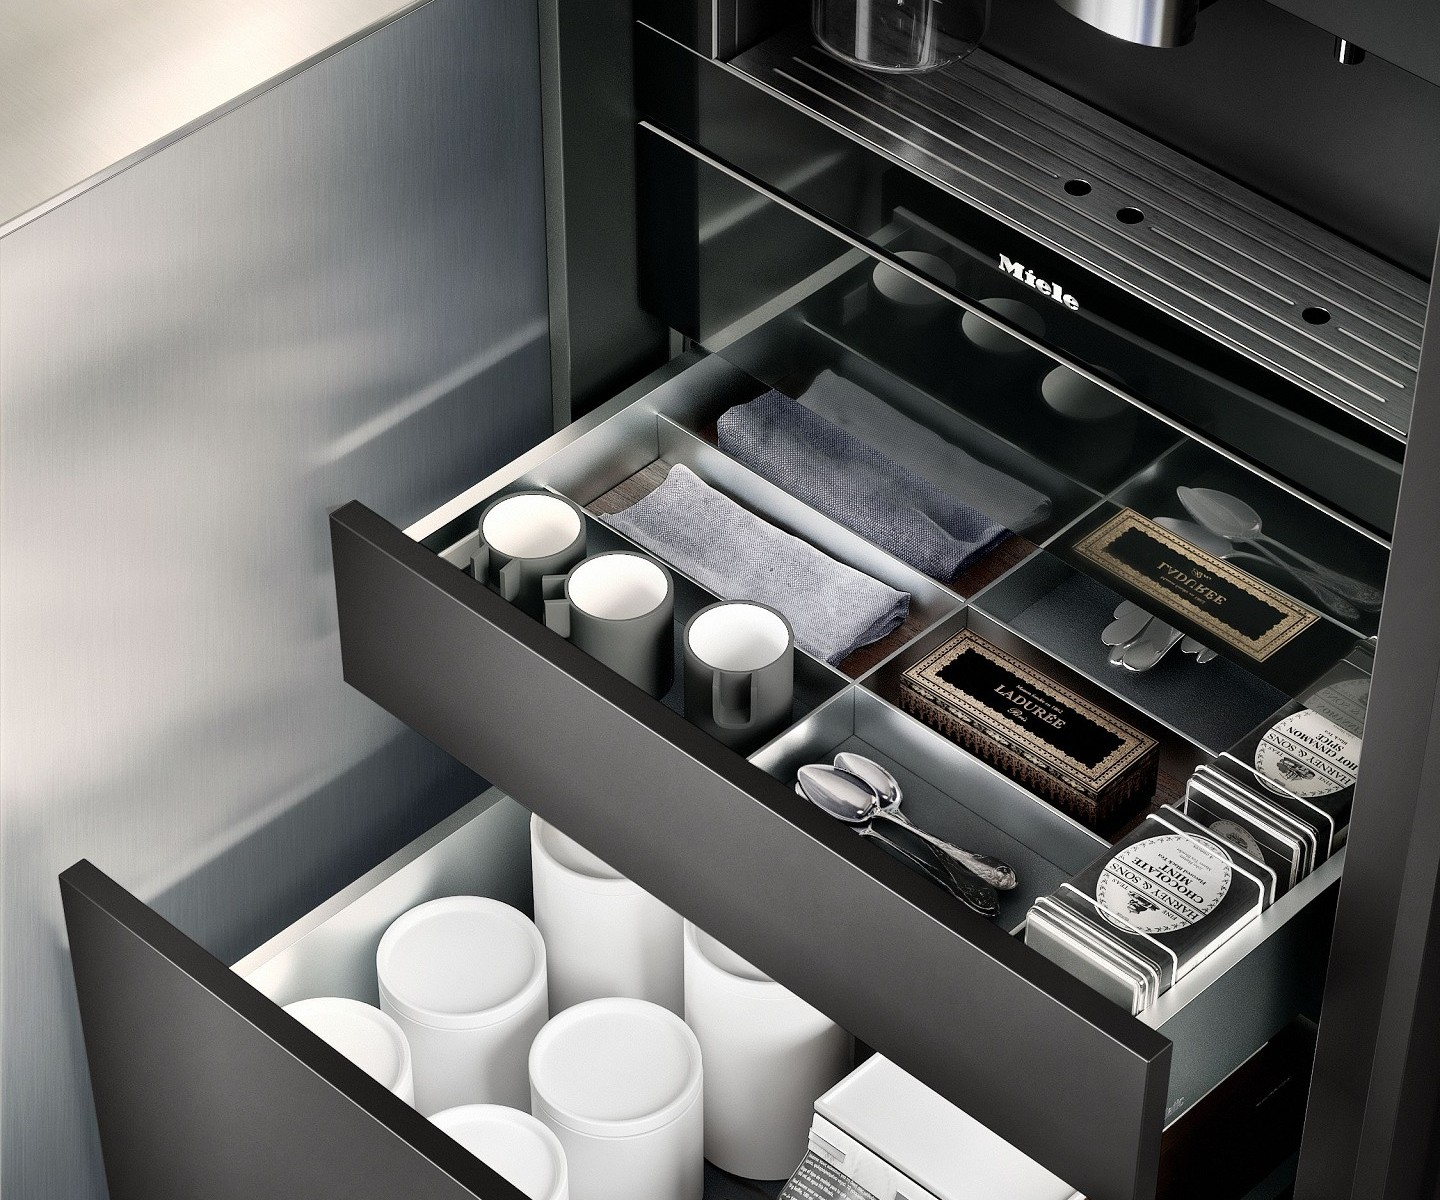 Porcelain containers and cutlery inserts from the SieMatic Aluminum Interior Accessories System for kitchen drawers